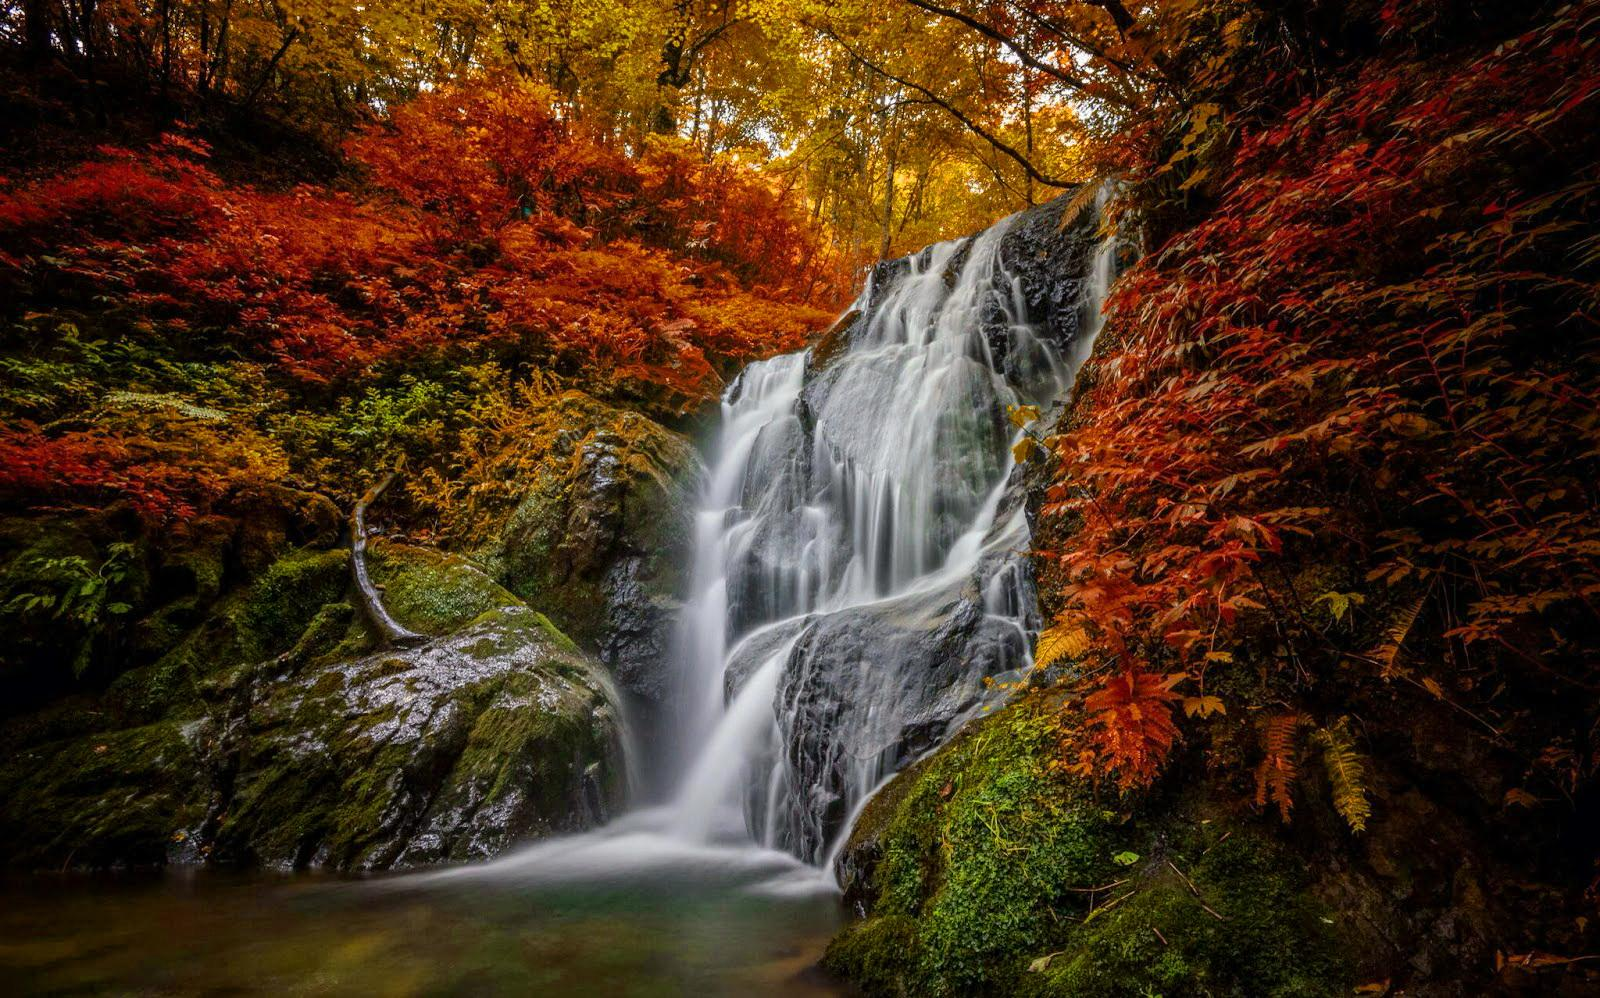 Abstract Fall Colors Wallpaper Forest Water Cascades Wallpaper Nature And Landscape